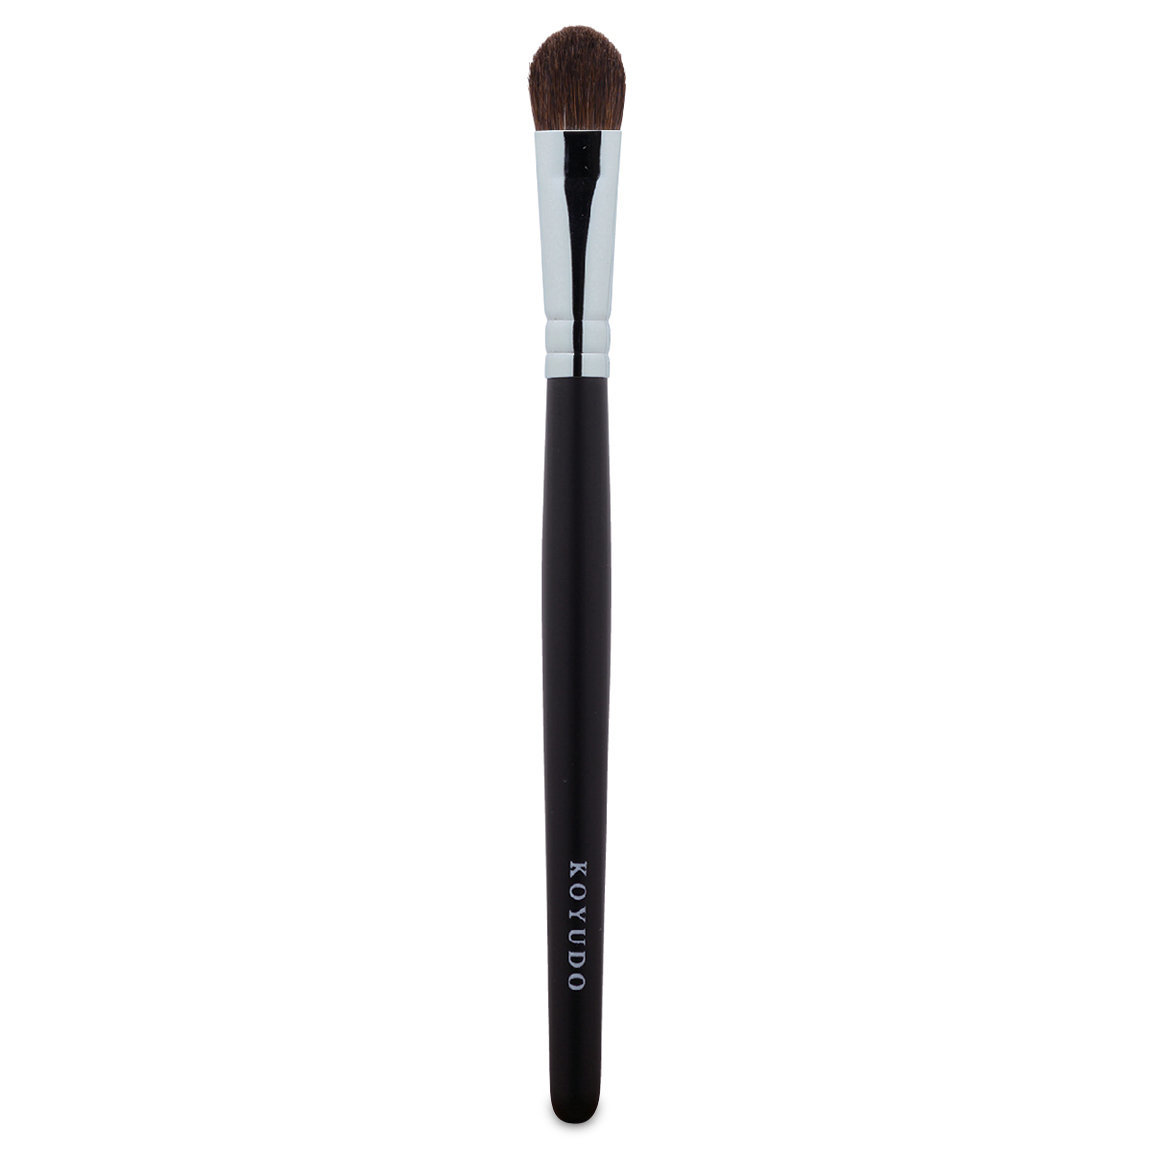 KOYUDO Casual Series C-30 Eyeshadow Brush product swatch.